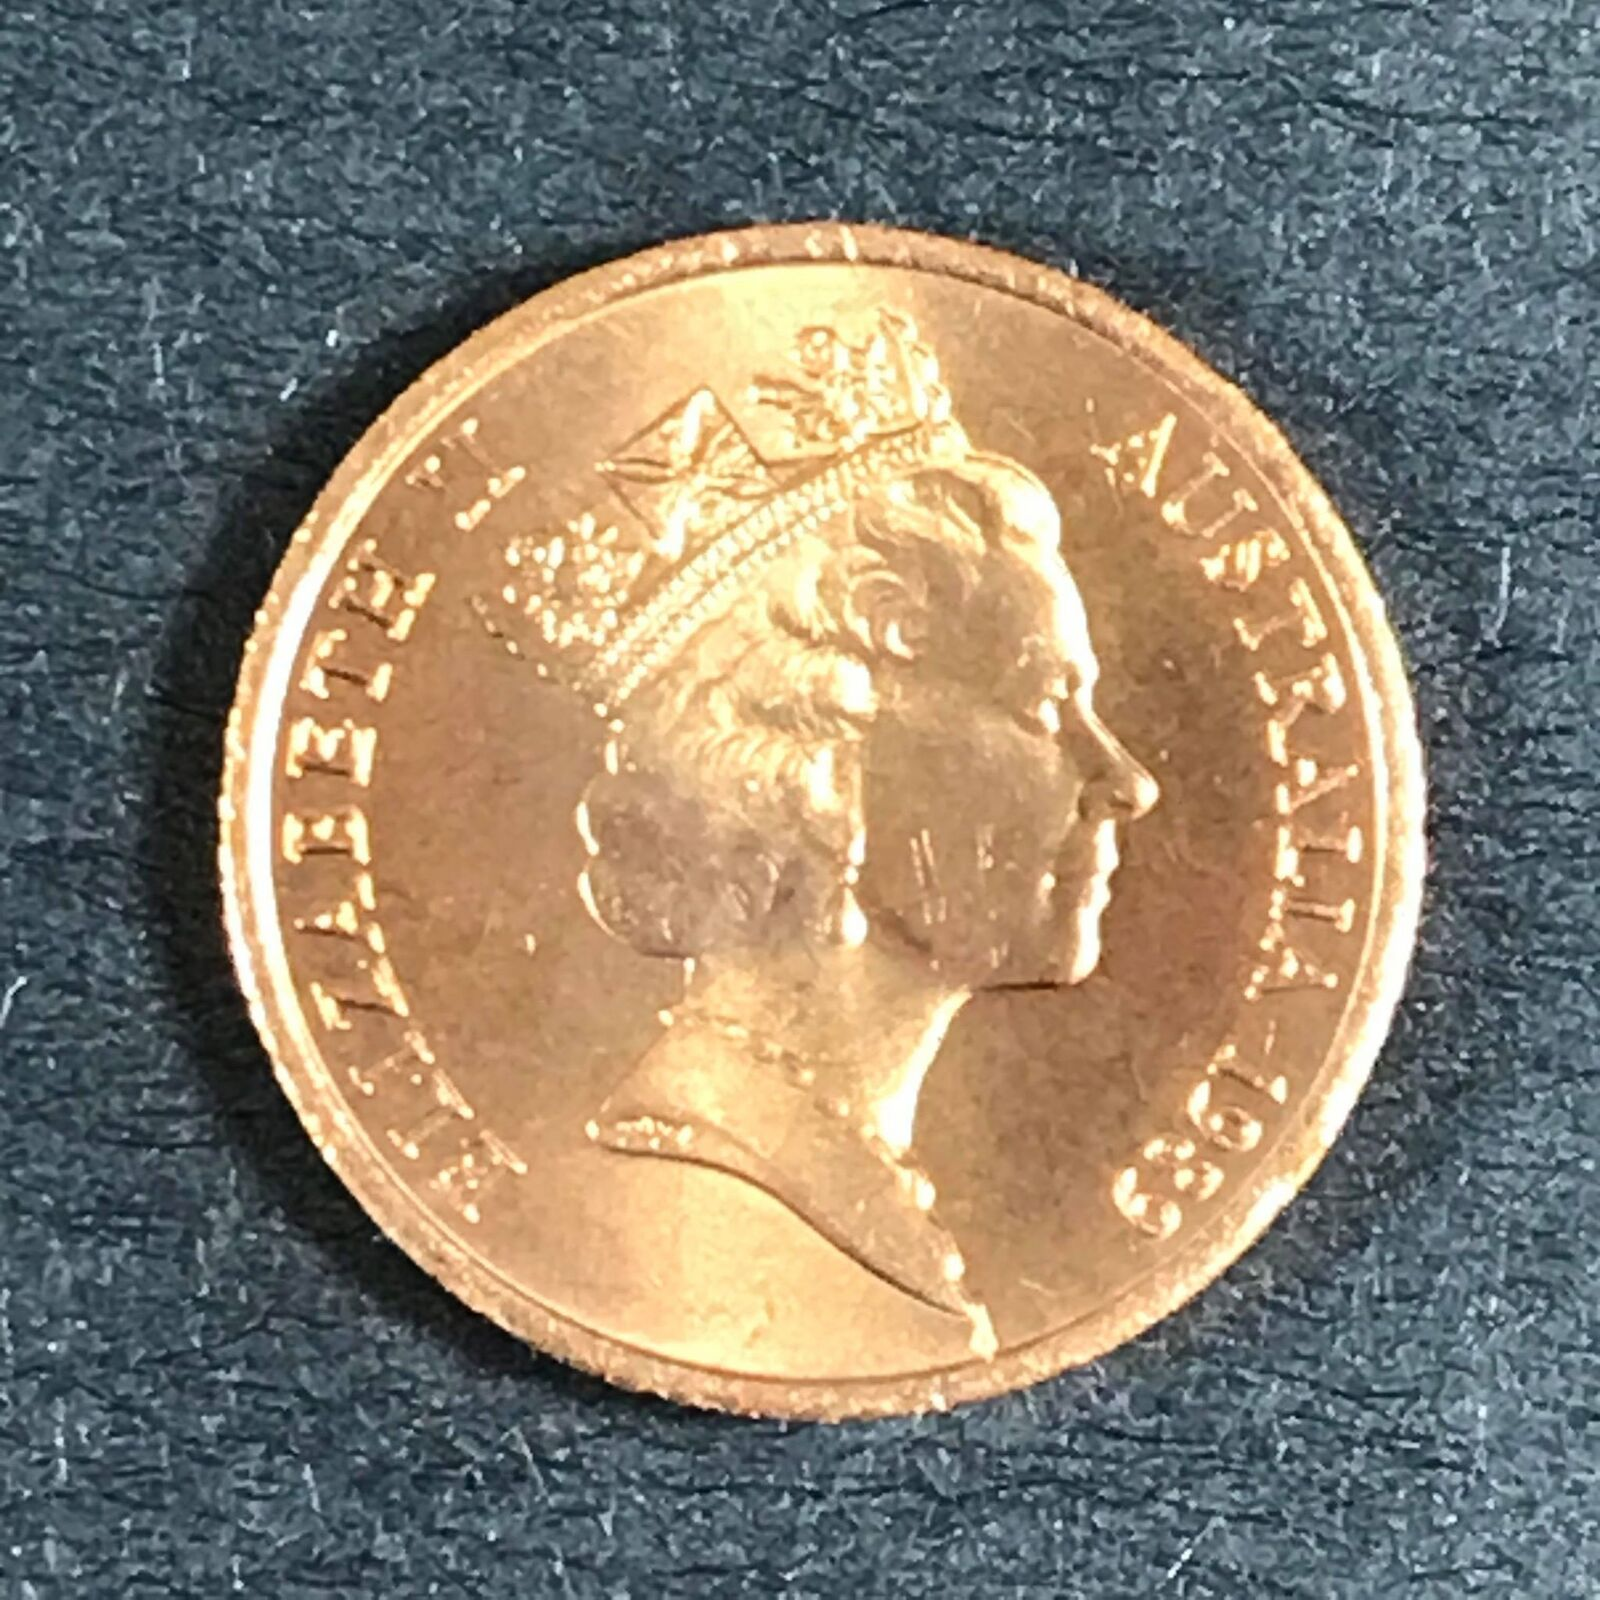 1 x 1989 Uncirculated 1c Royal Australian Mint